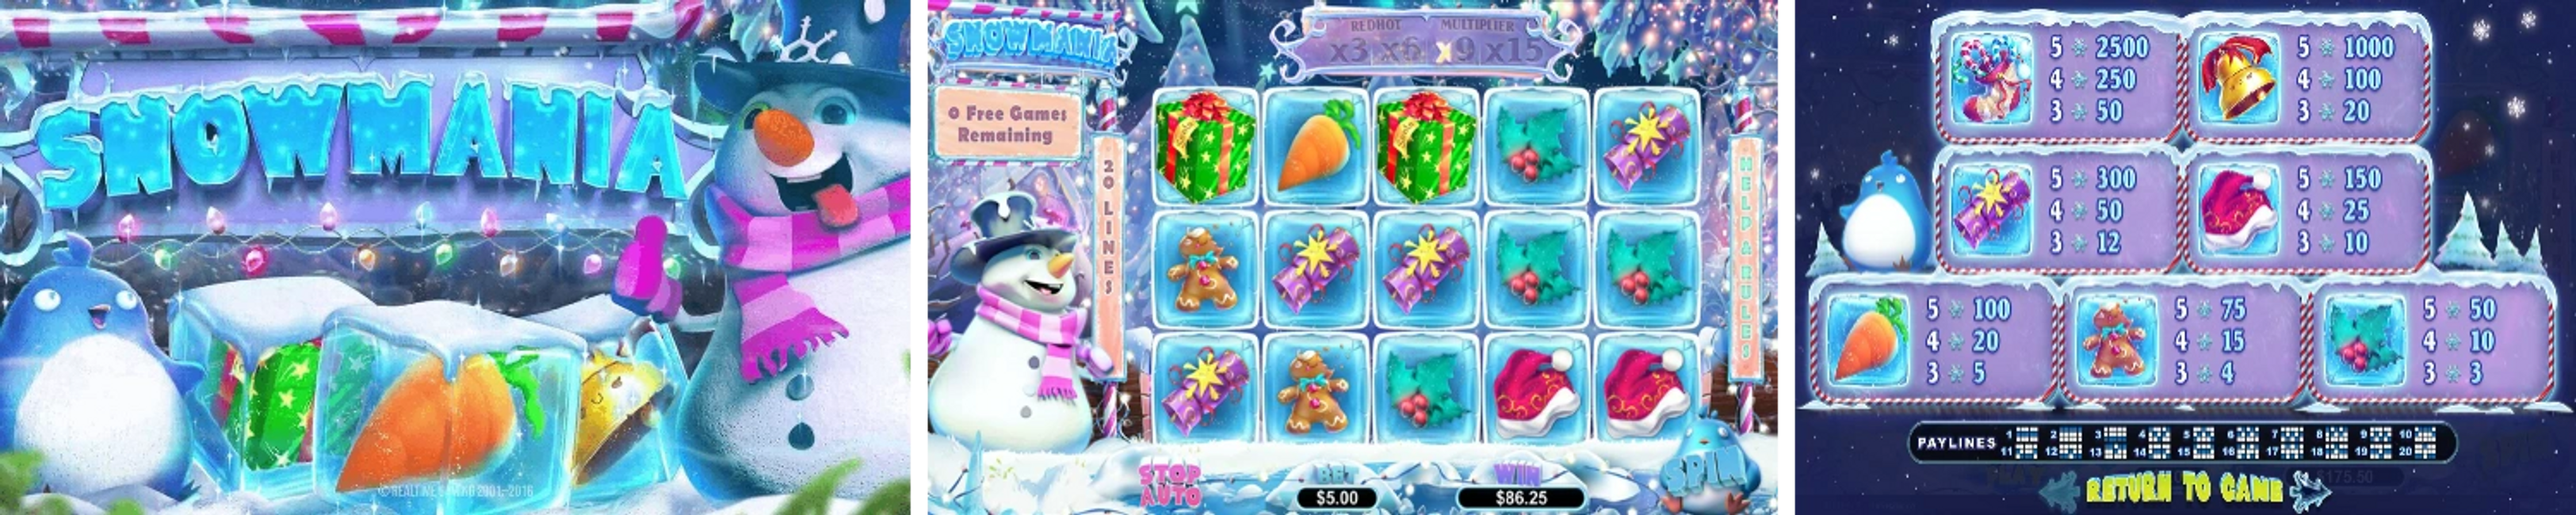 Snowmania Online Video Slot Review